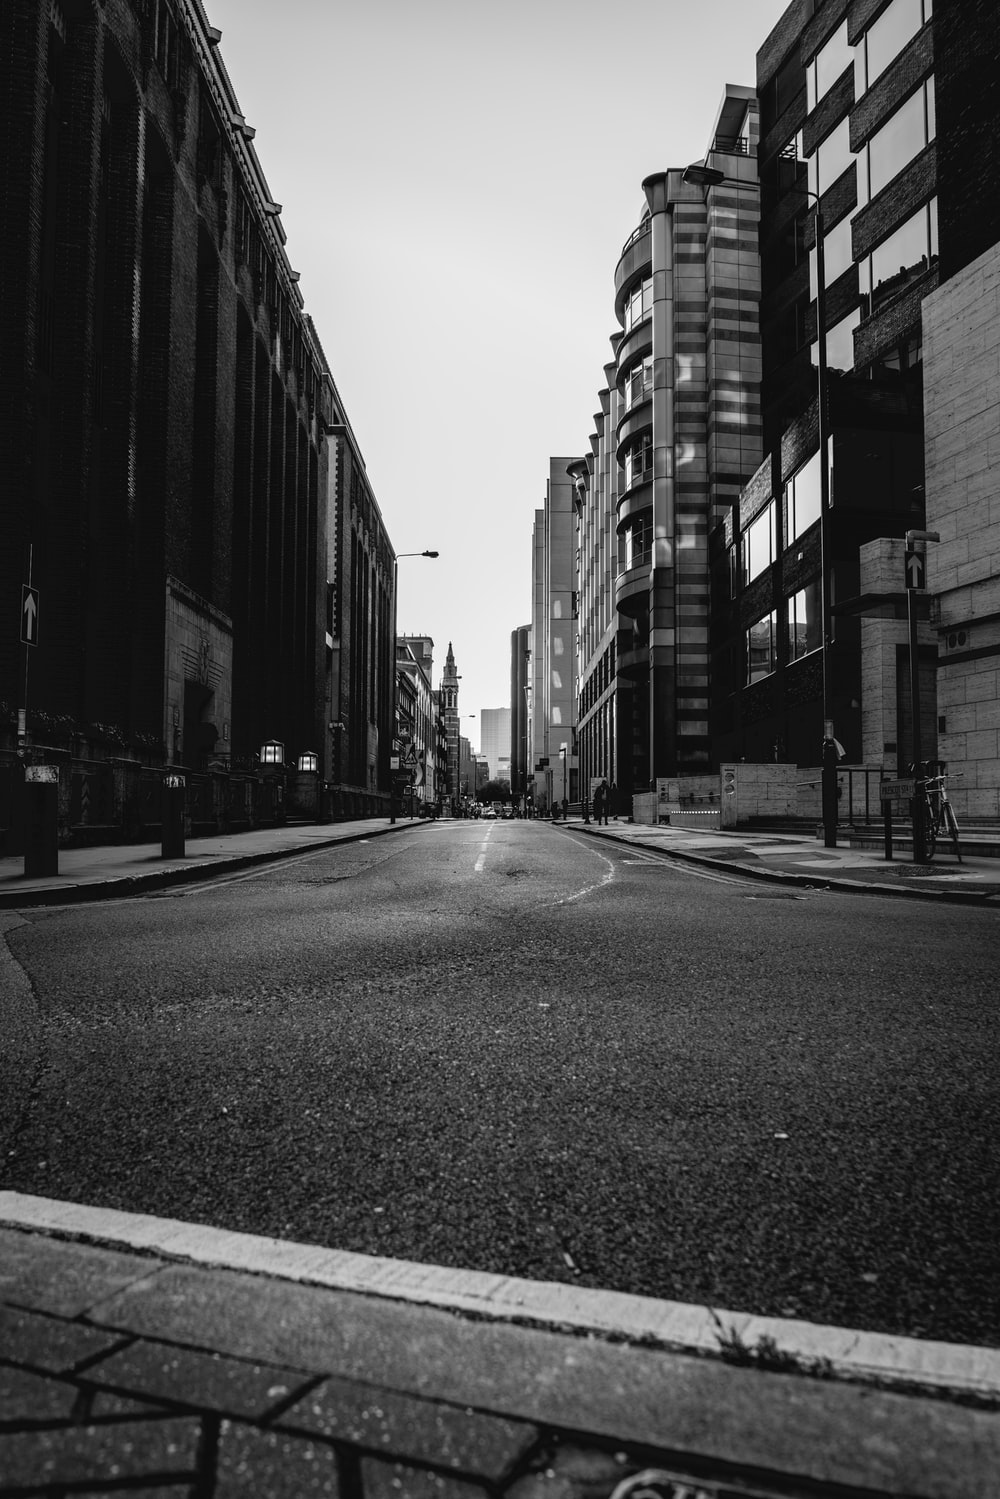 grayscale photography of a street between buildings